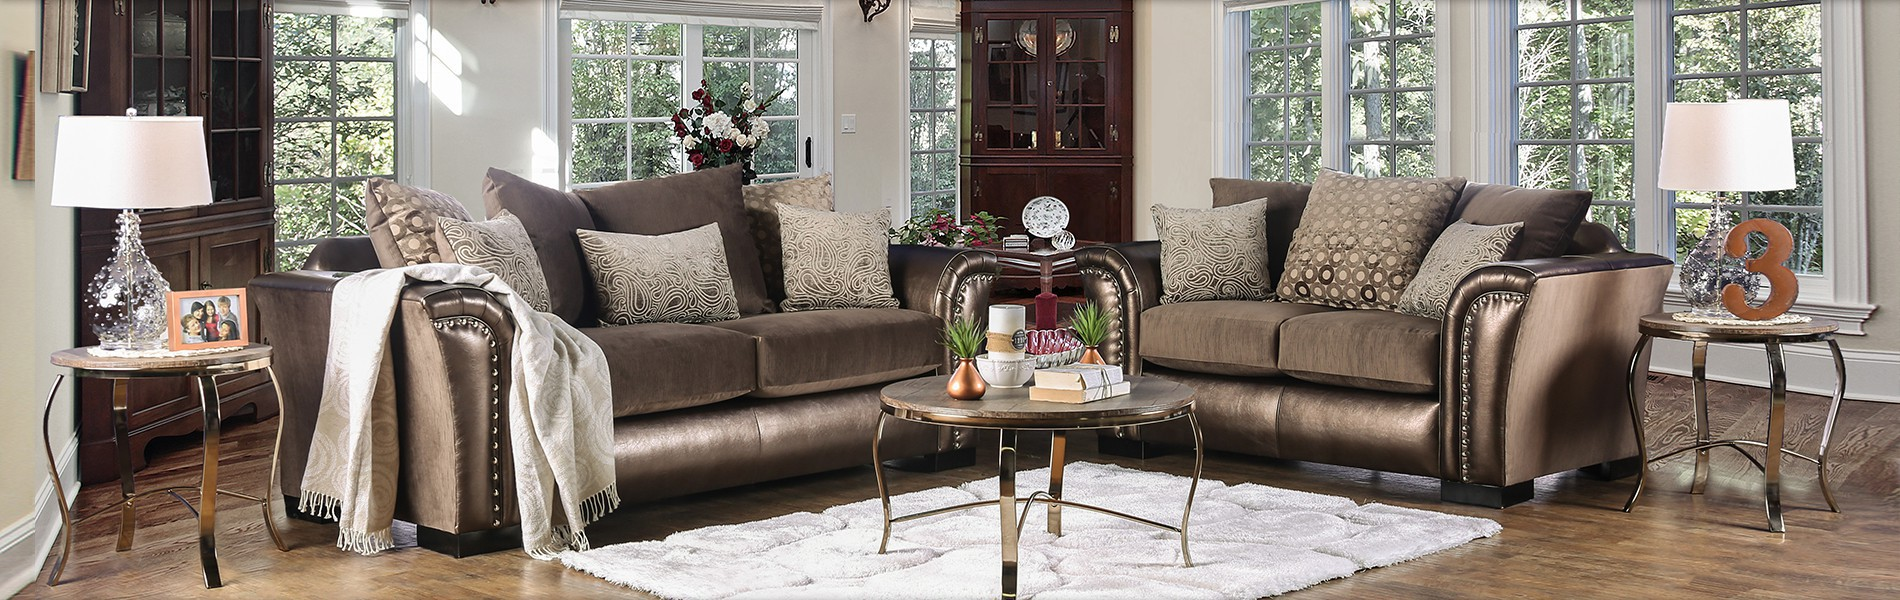 Www Furniture Com Home Fair Furniture Of America  More Value For Less Always